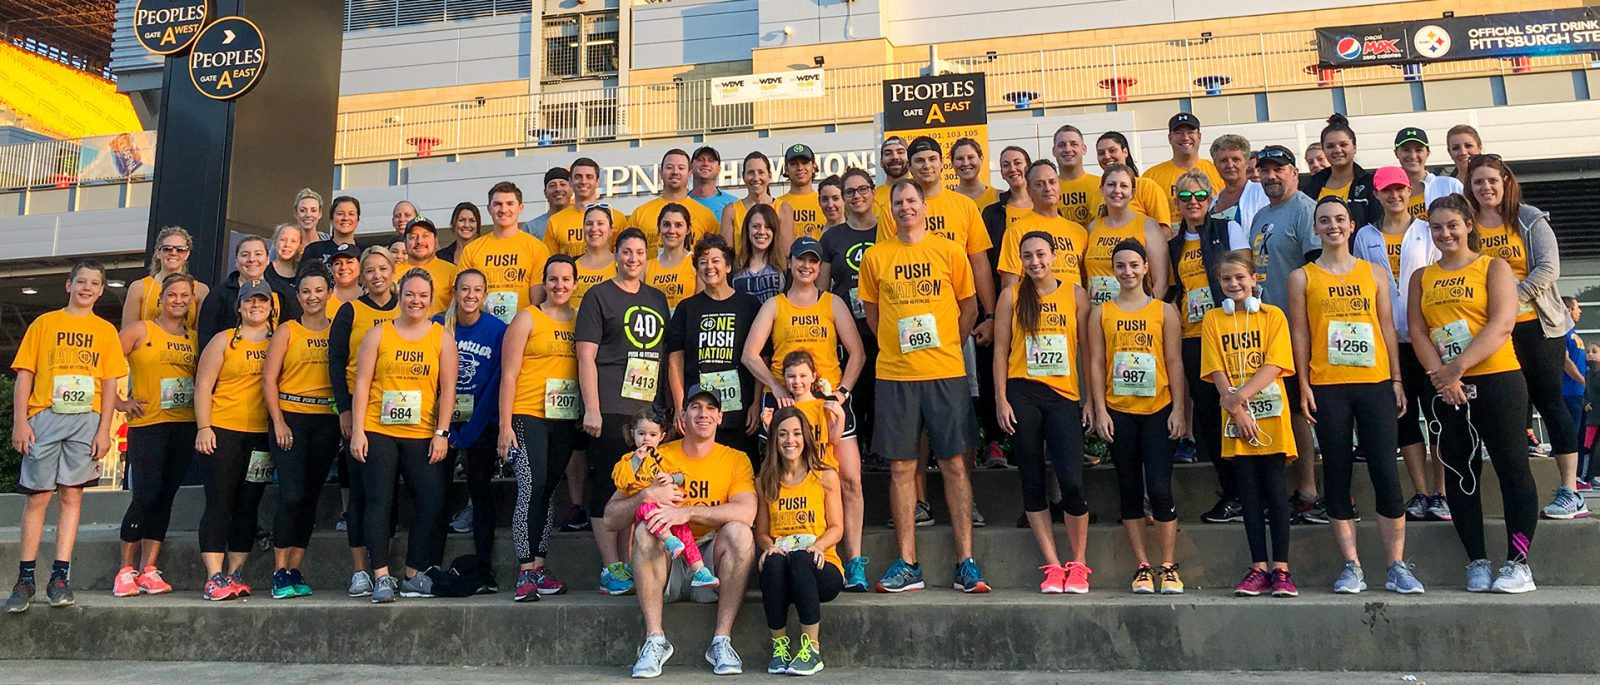 push40-members-steelers-5k-1600x685.jpg